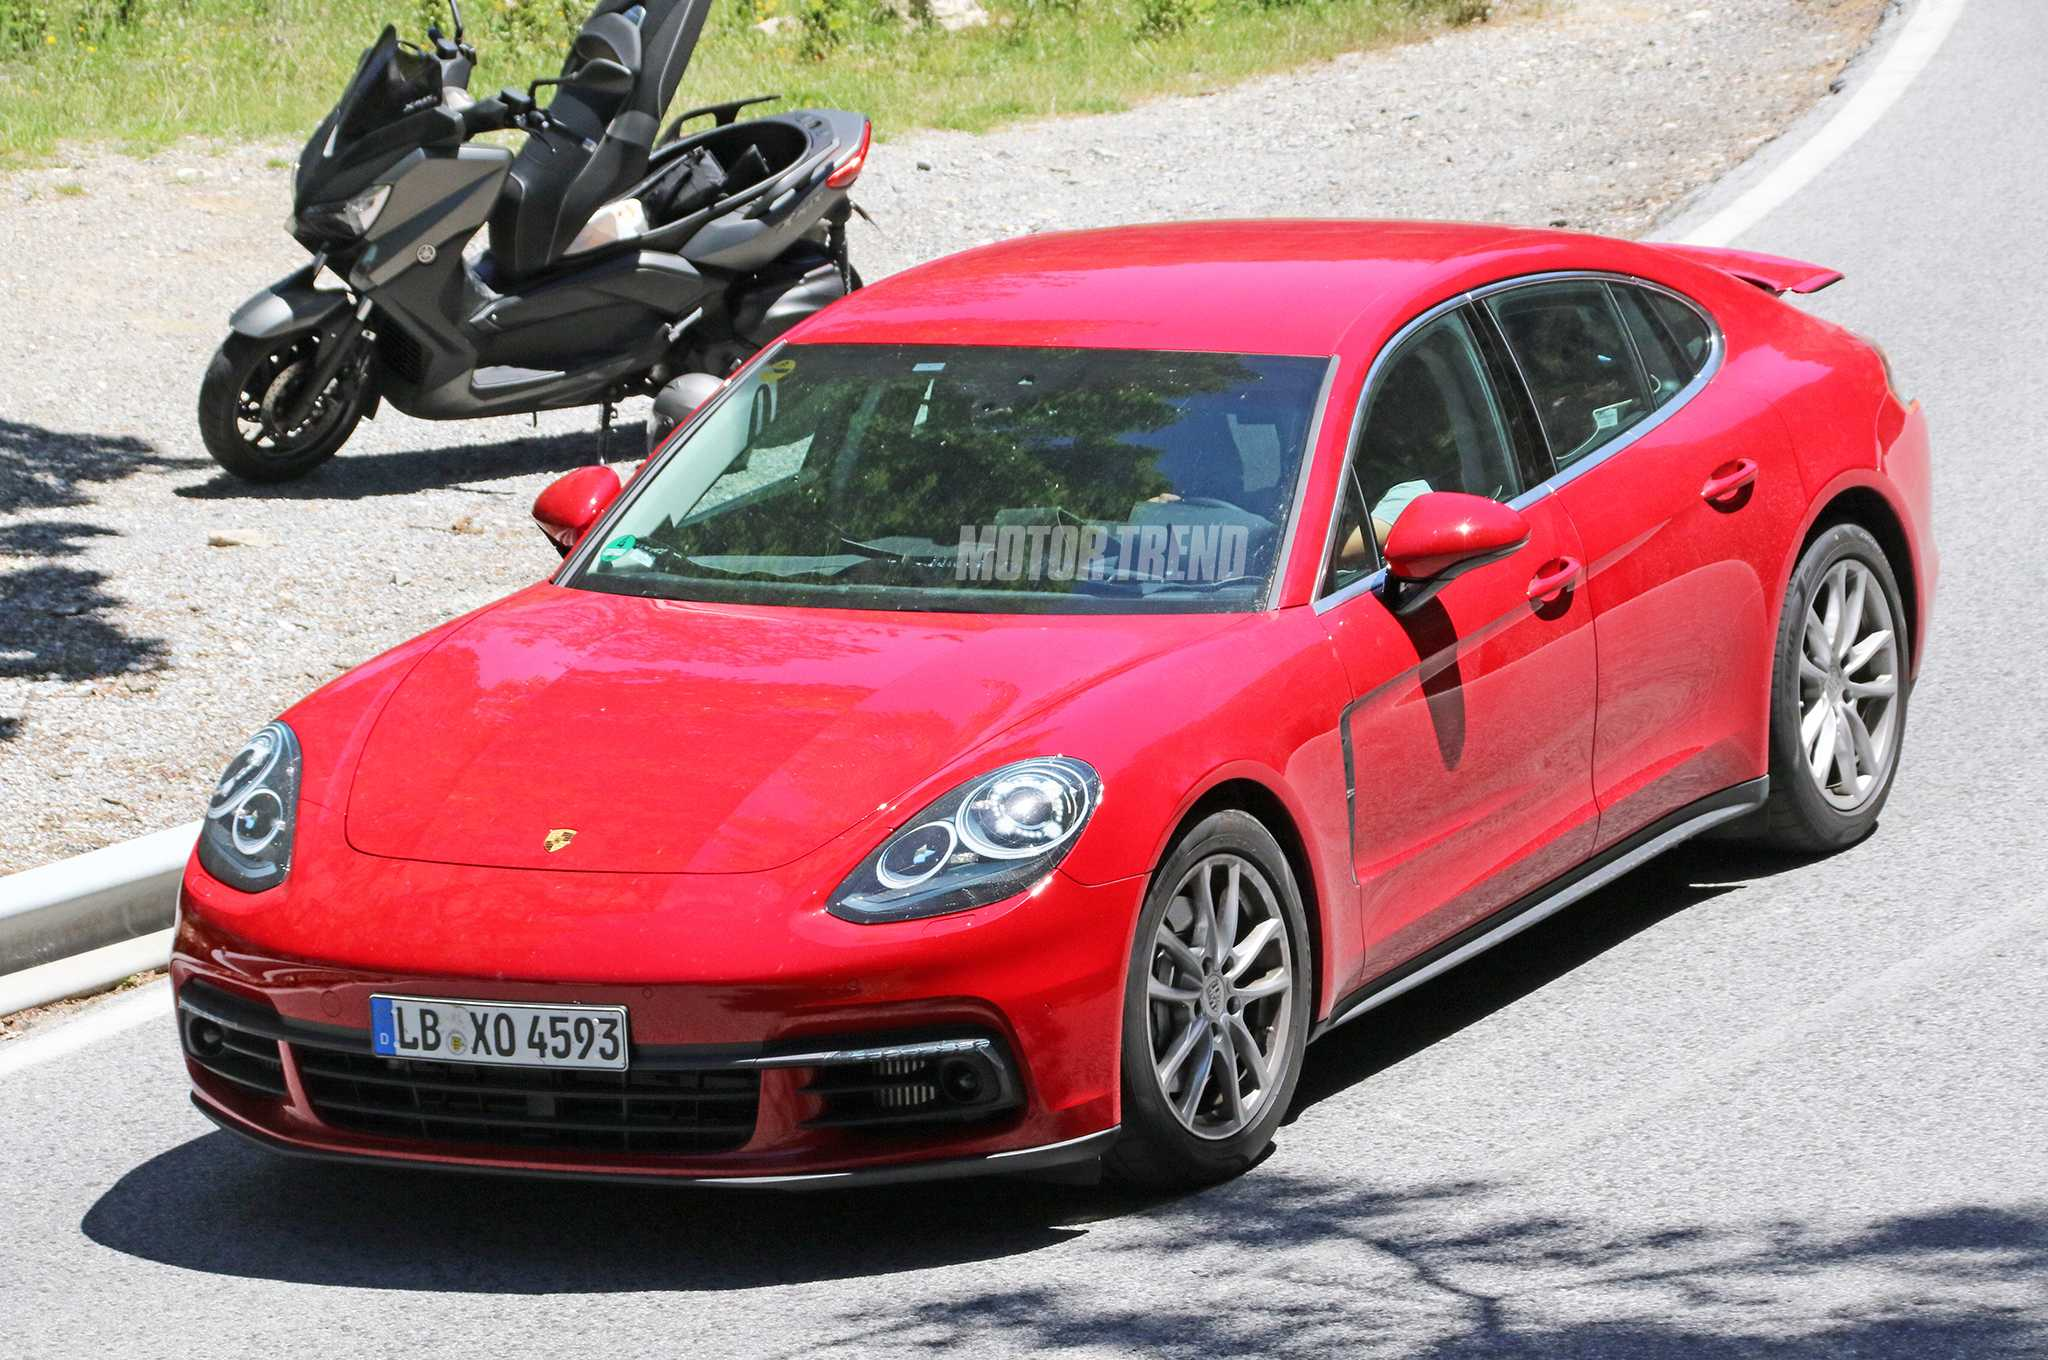 Porsche Panamera New Edition Spied Without Camouflage